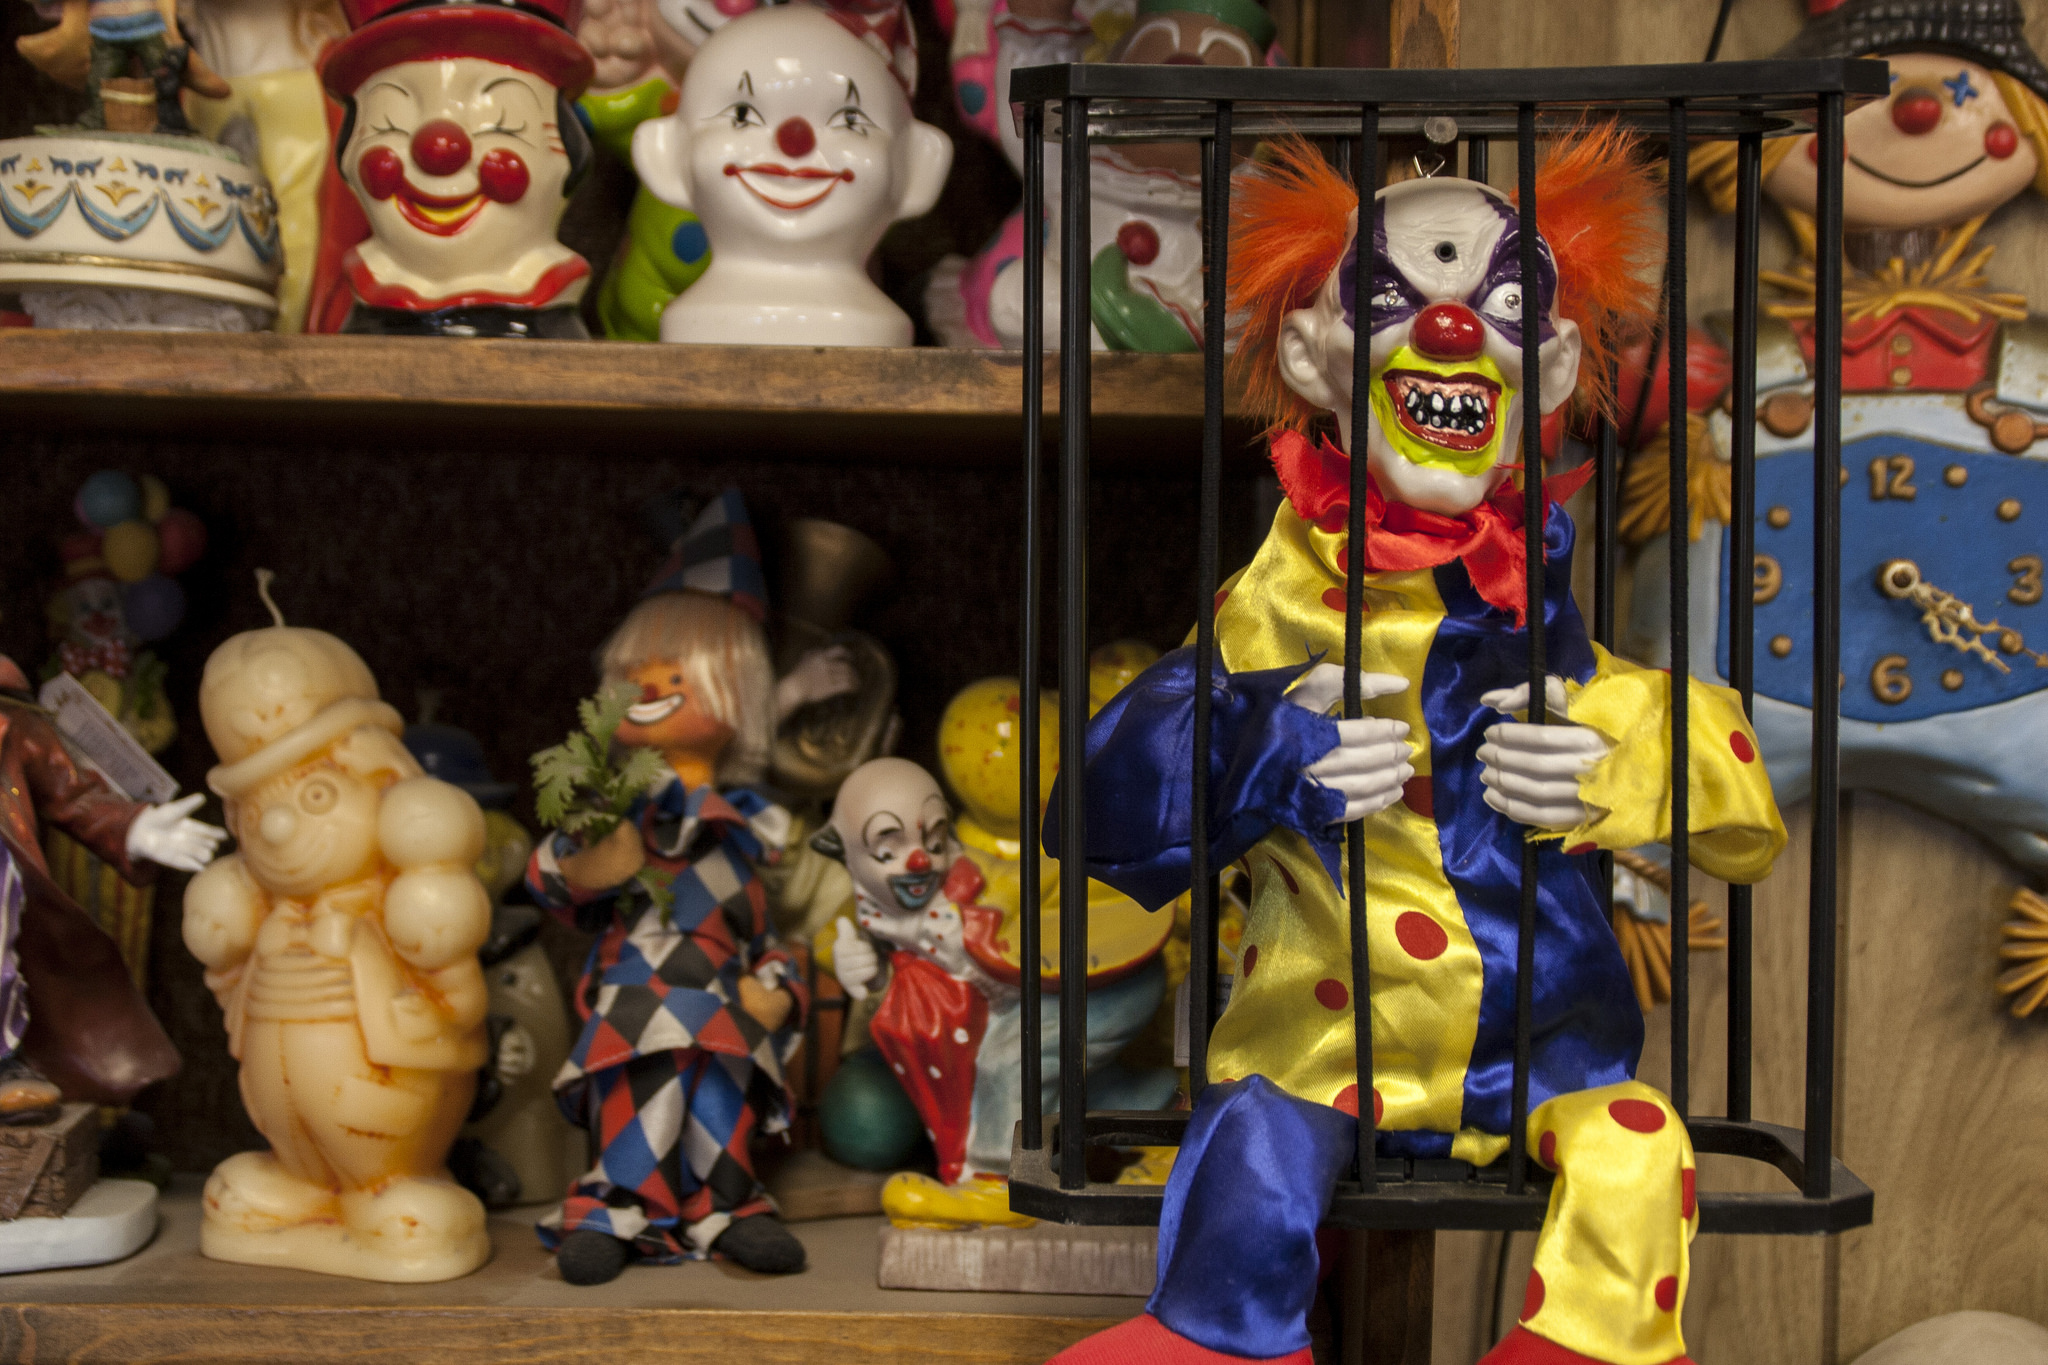 The foyer of the Clown Motel in Nevada is the stuff of nightmares.